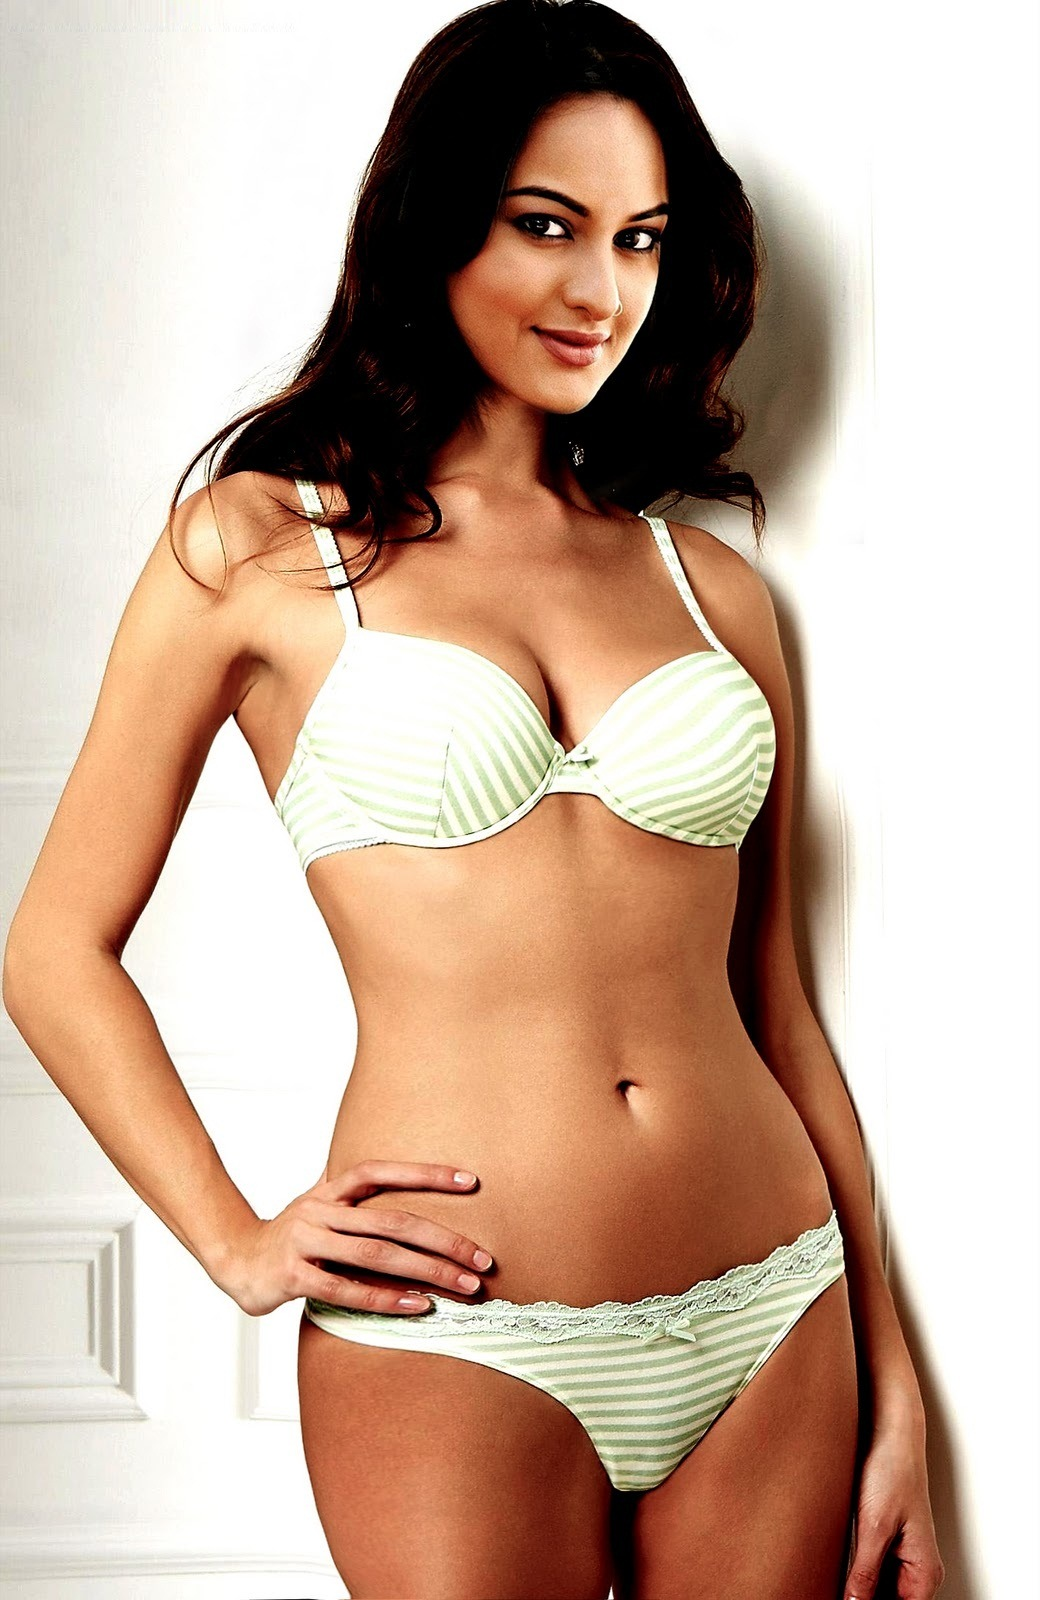 Hottest Bollywood Actress : November 2012